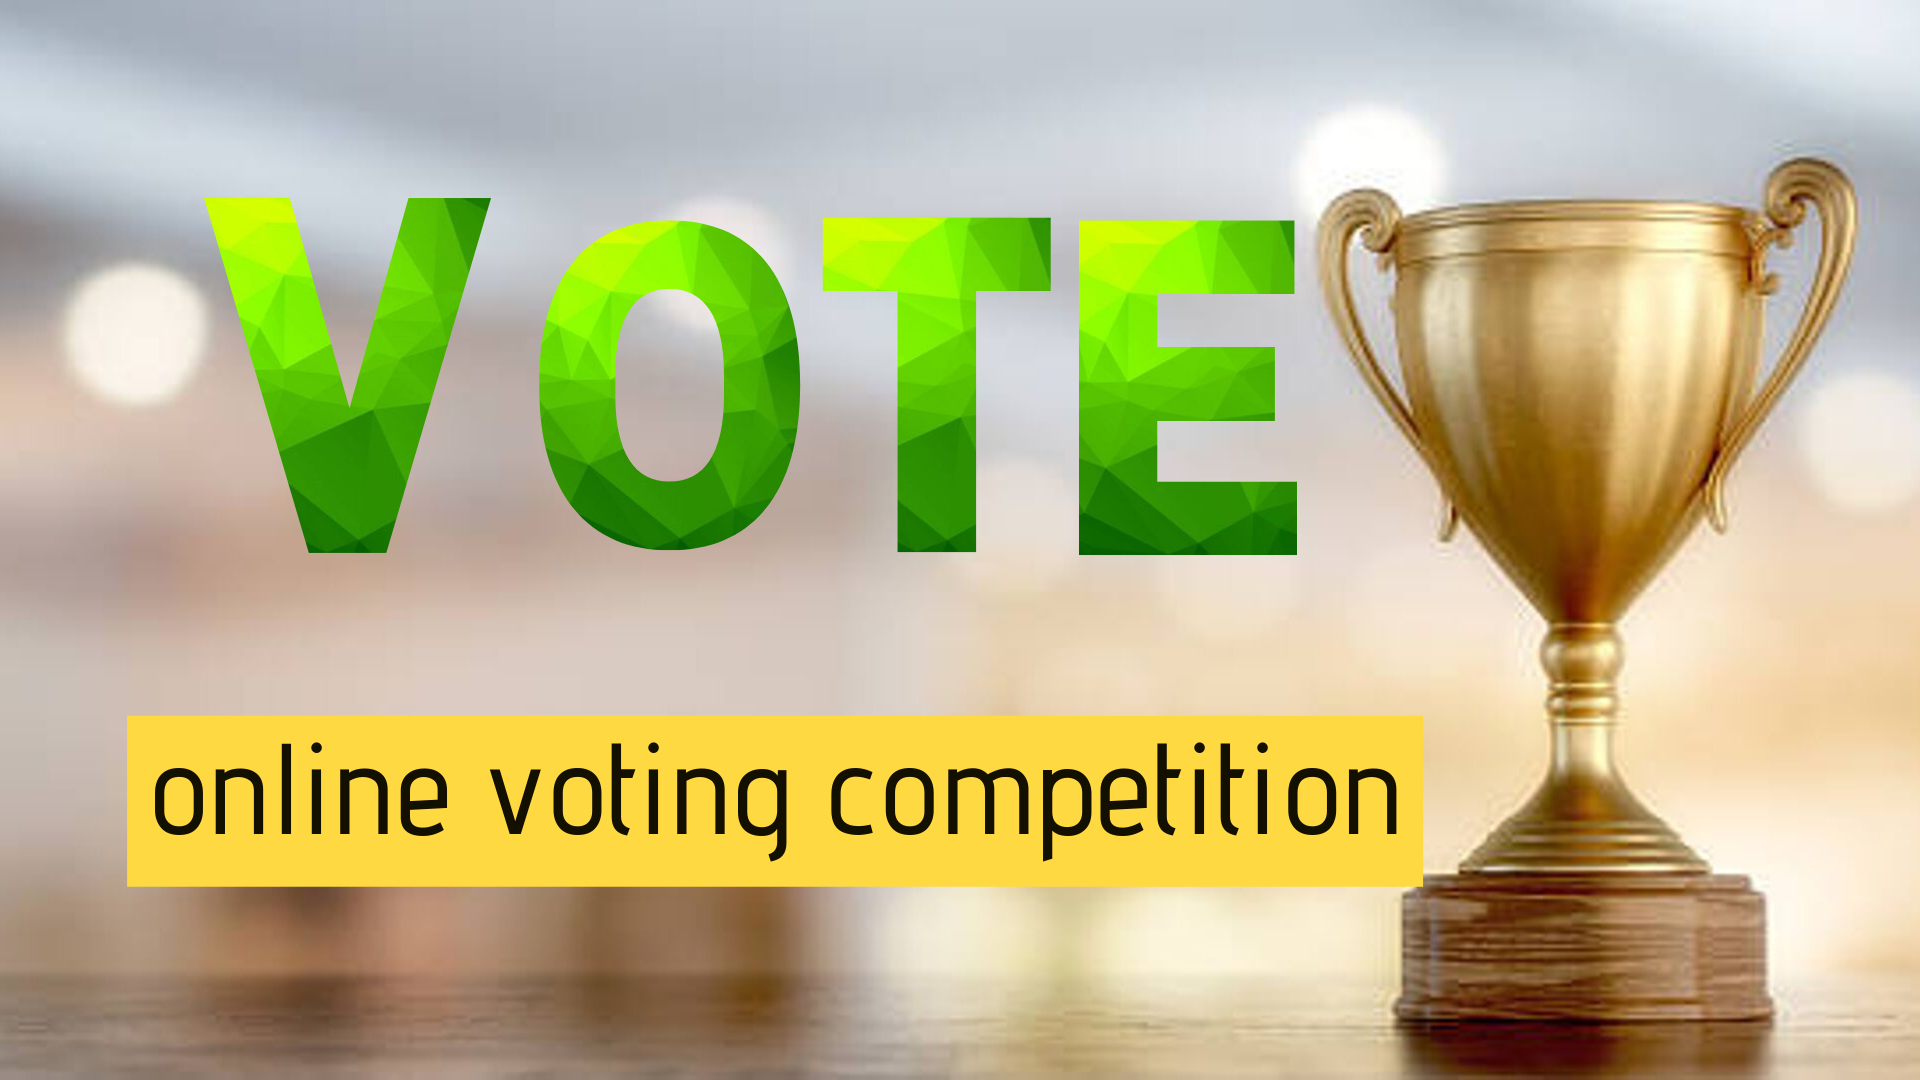 Collect 100+ Different and Unique IP Votes For Your Online Voting Contest Entry